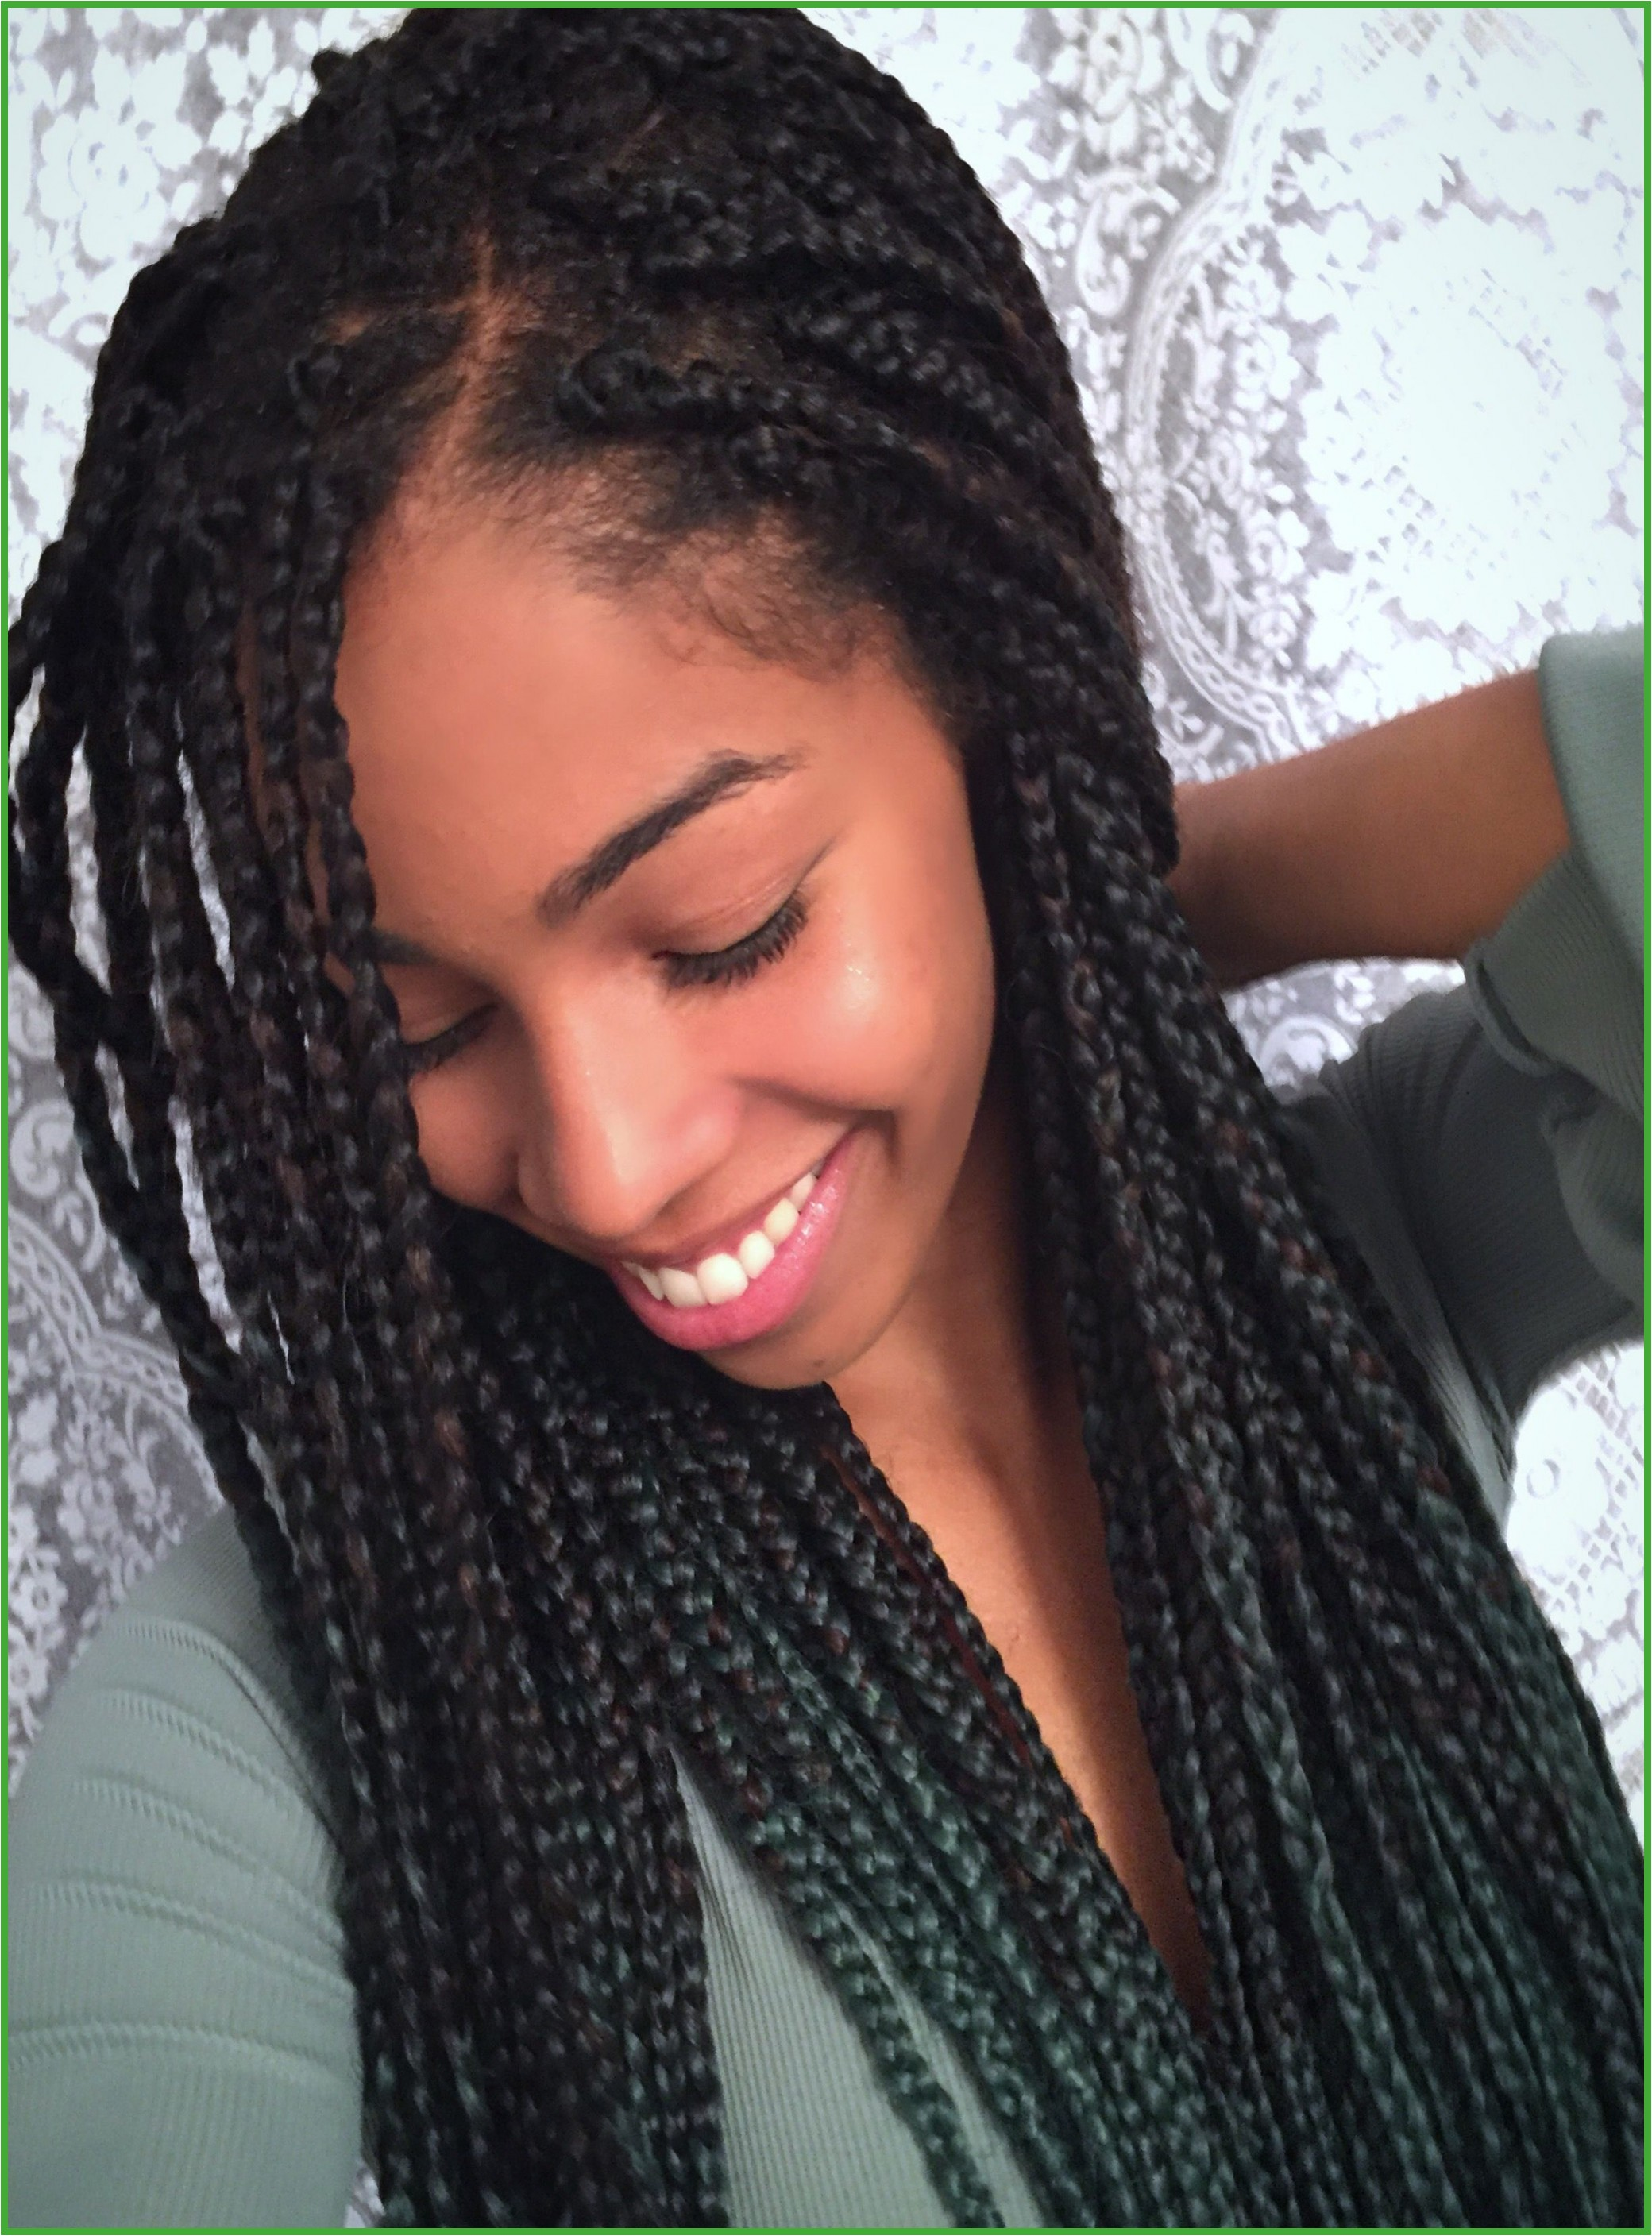 Box Braid Inspiration Protective Styles for Natural Hair Care Free Black Girl